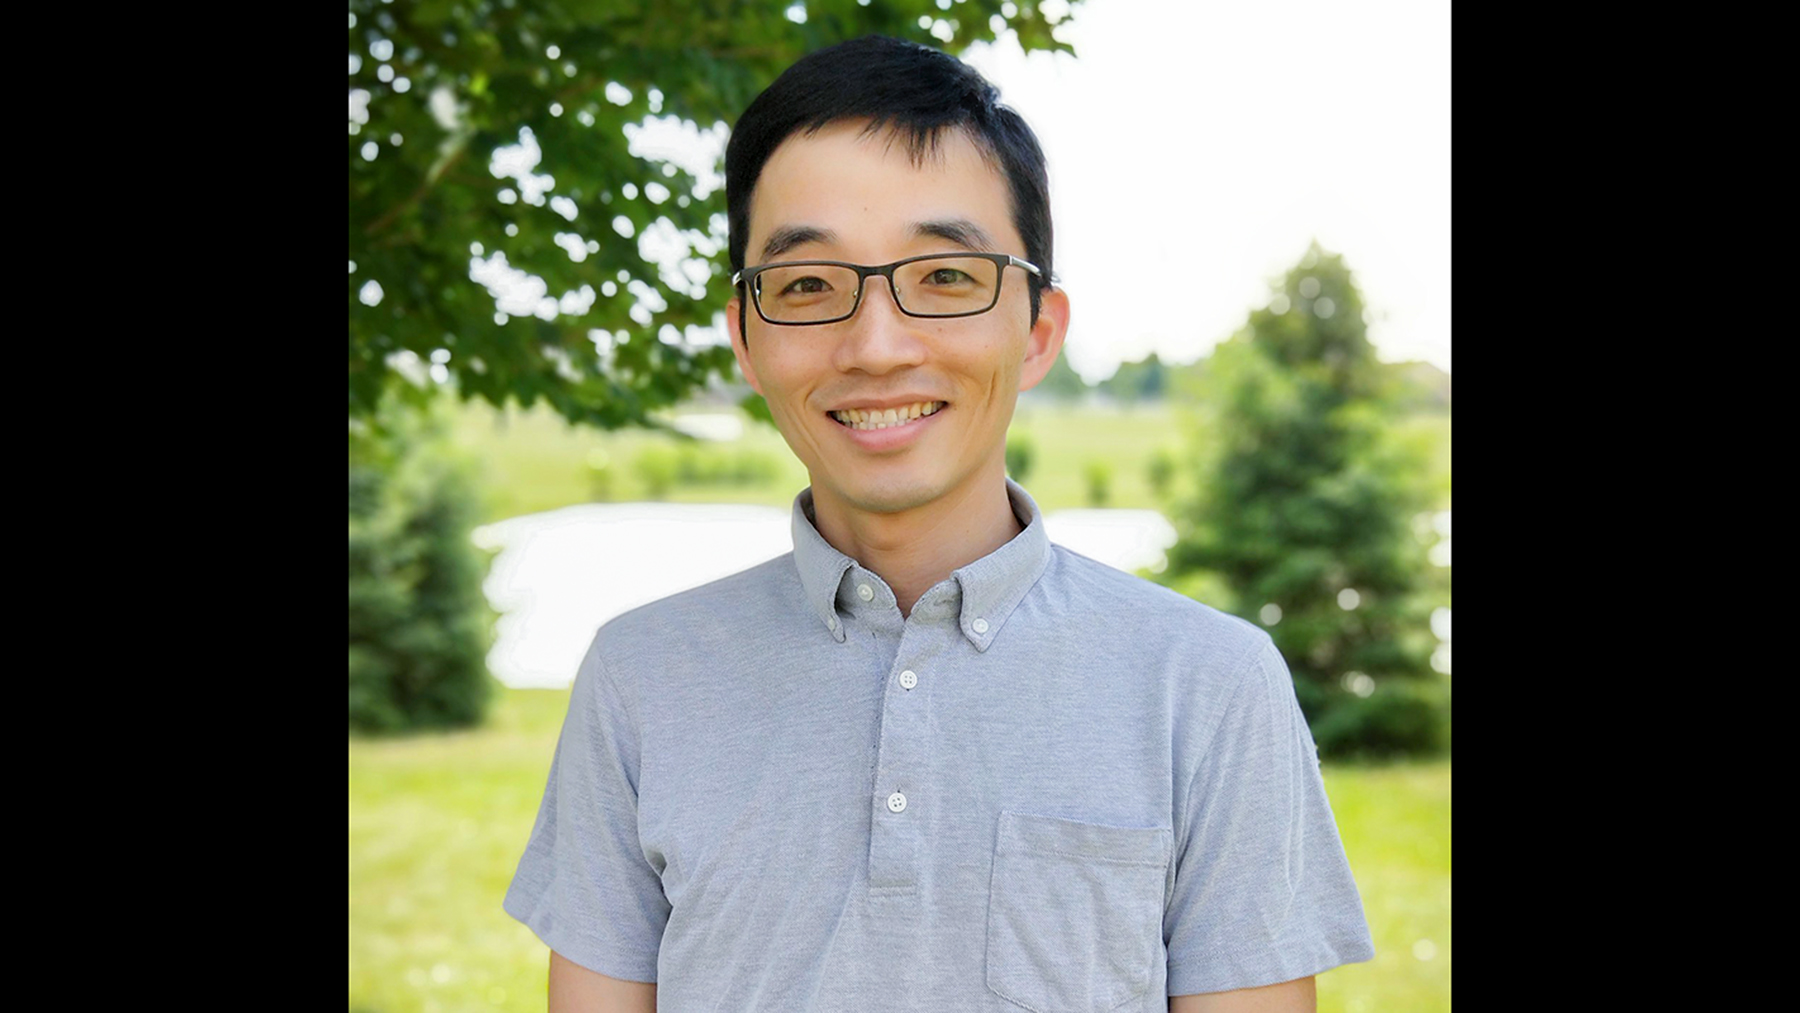 Mikihiro Sato is a professor of recreation, sport and tourism at the University of Illinois Urbana-Champaign. Photo by L. B. Stauffer